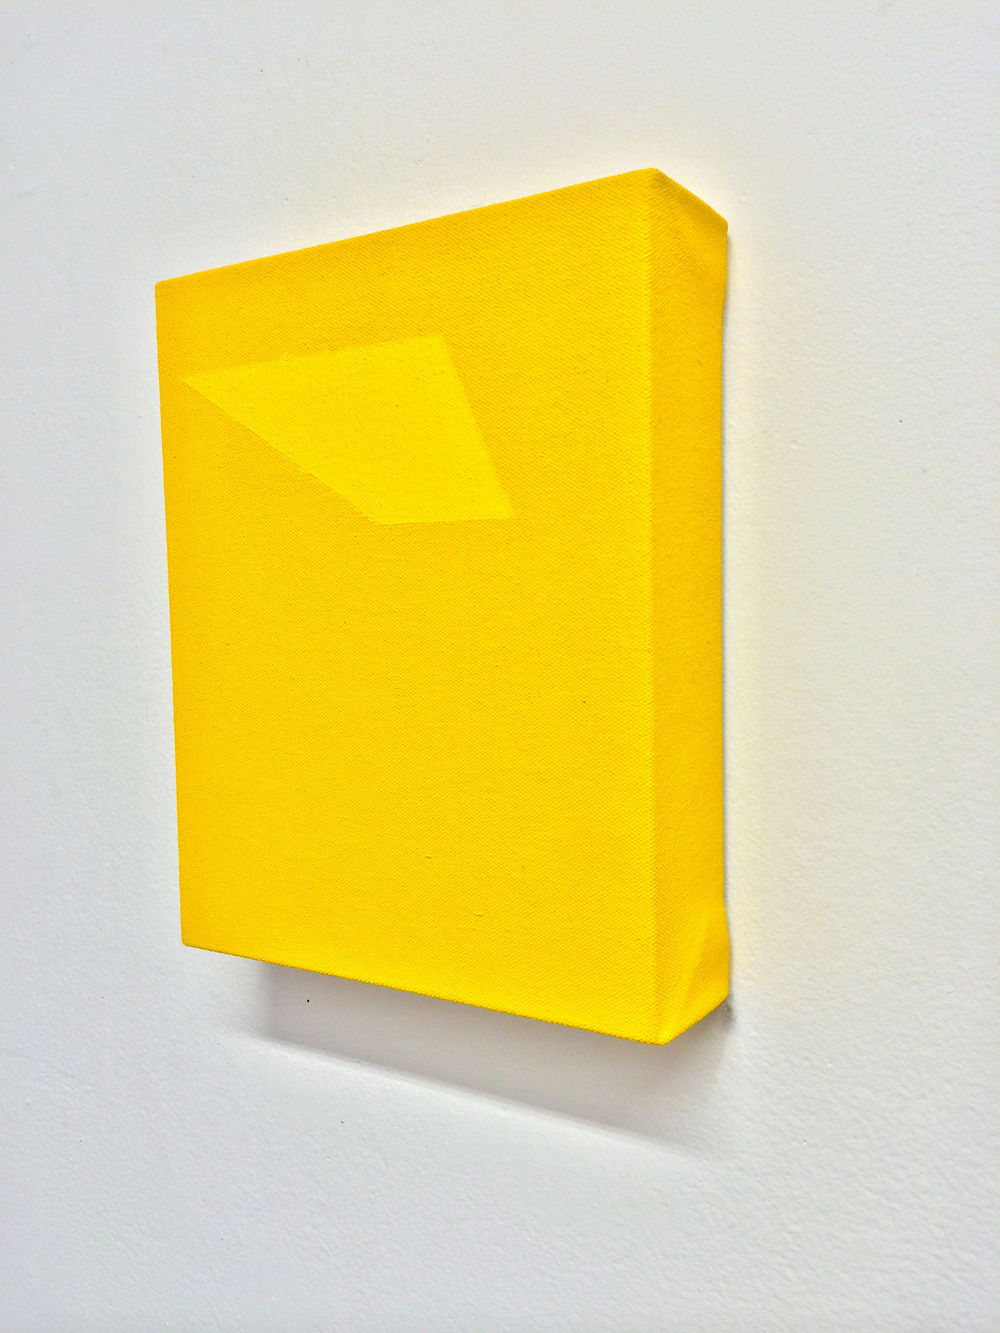 Untitled (Construction of yellow, yellow II)  enamel and pigment on canvas on panel